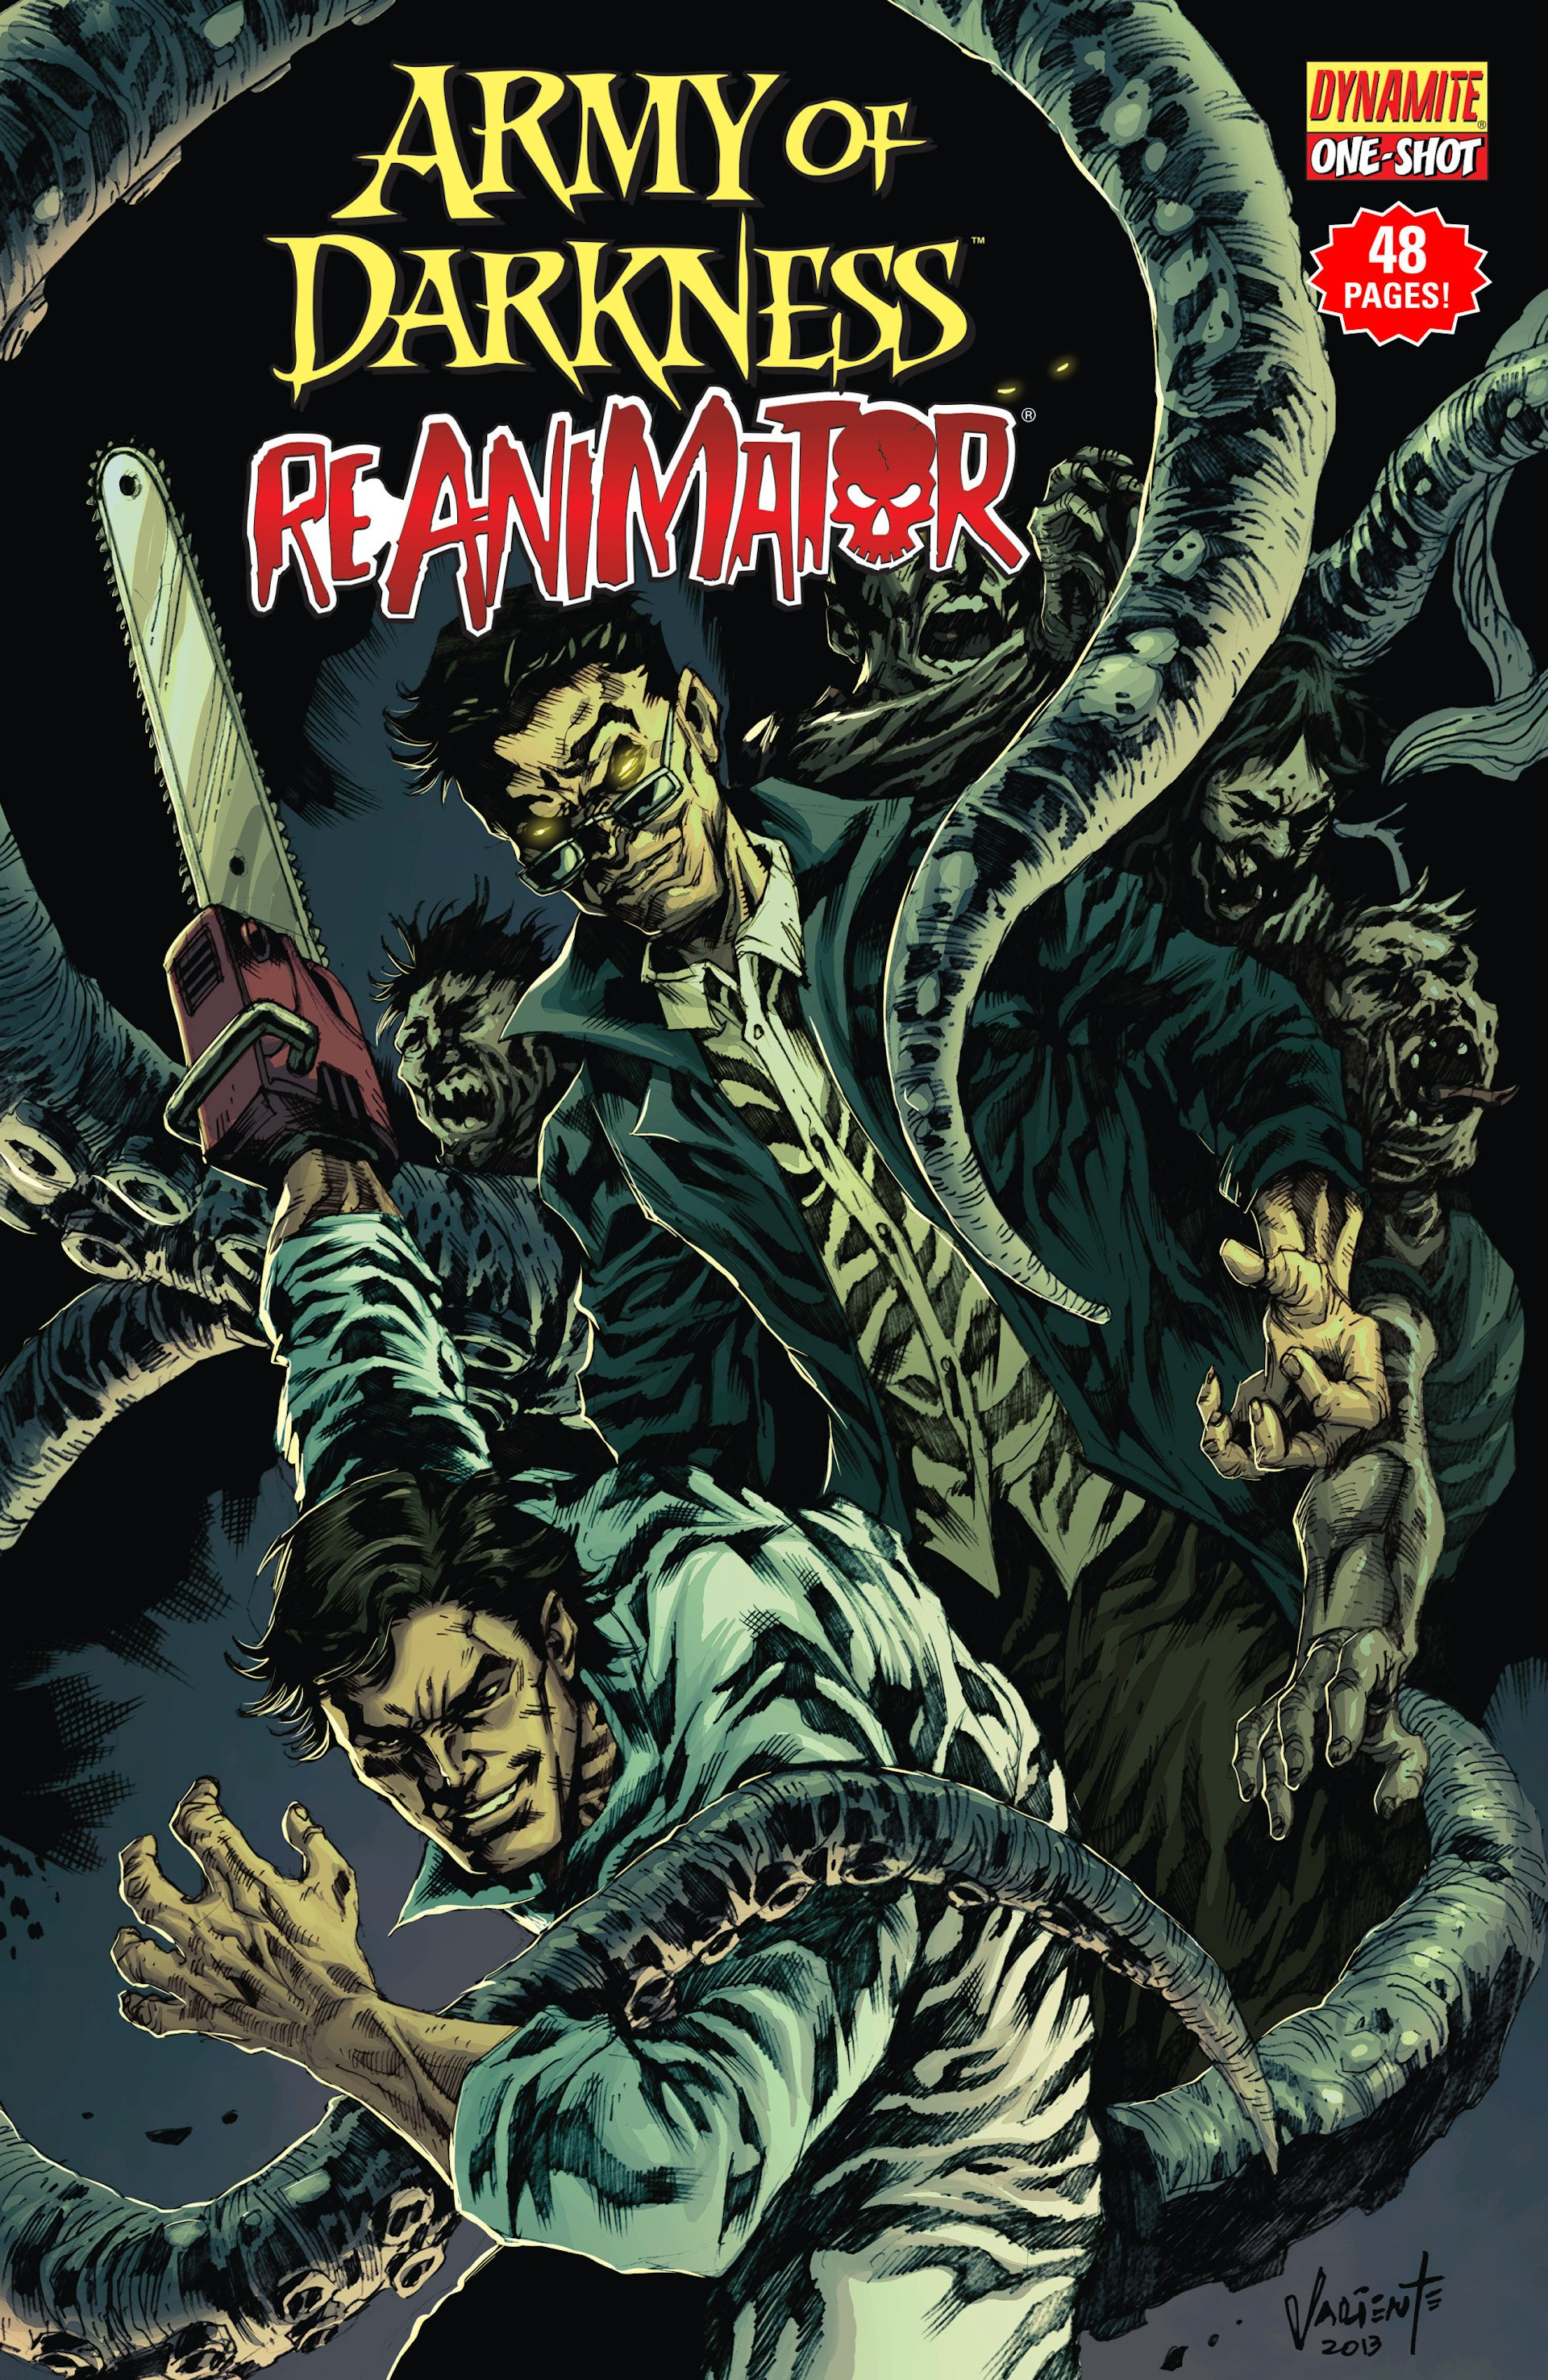 Army of Darkness/Reanimator Full Page 1